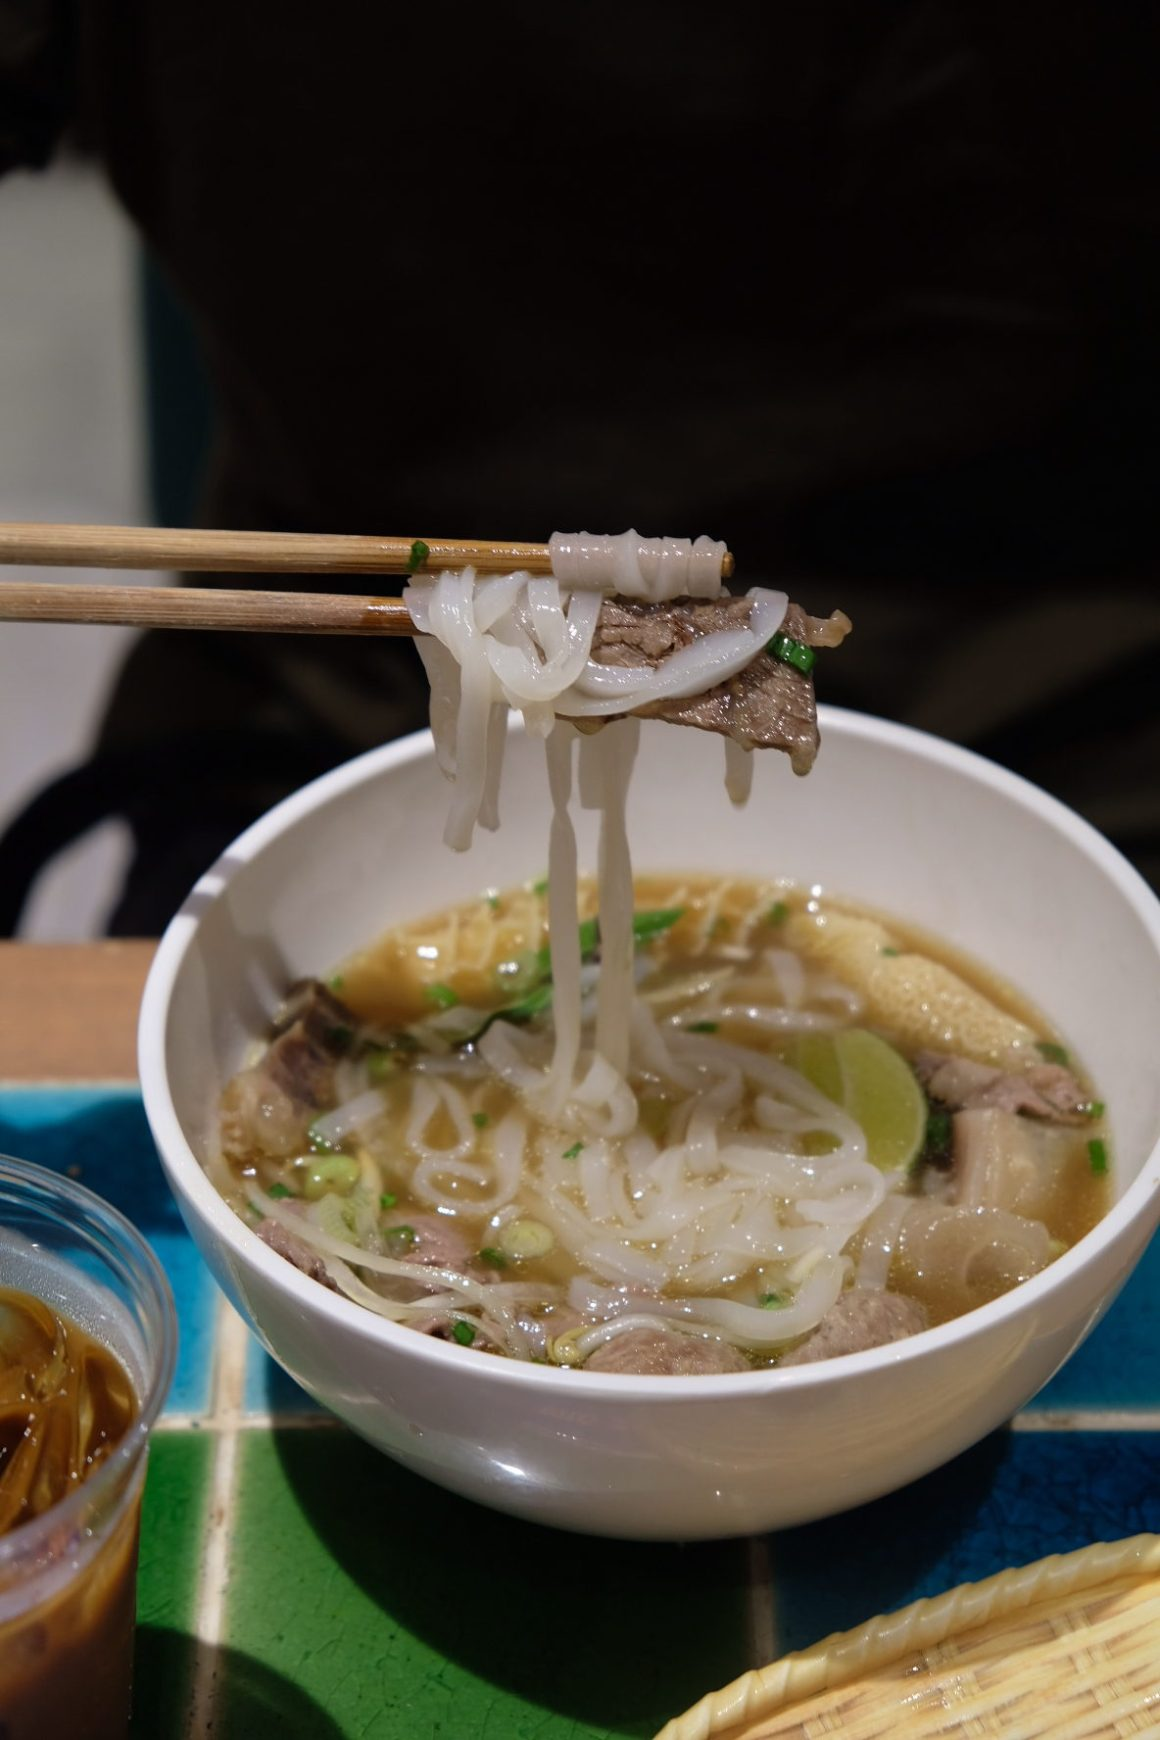 Caption First-Ever Pho Day By Pho Street Going At SGD 0.60 per bowl - Noodle-pulling, Signature Pho Beef Combination